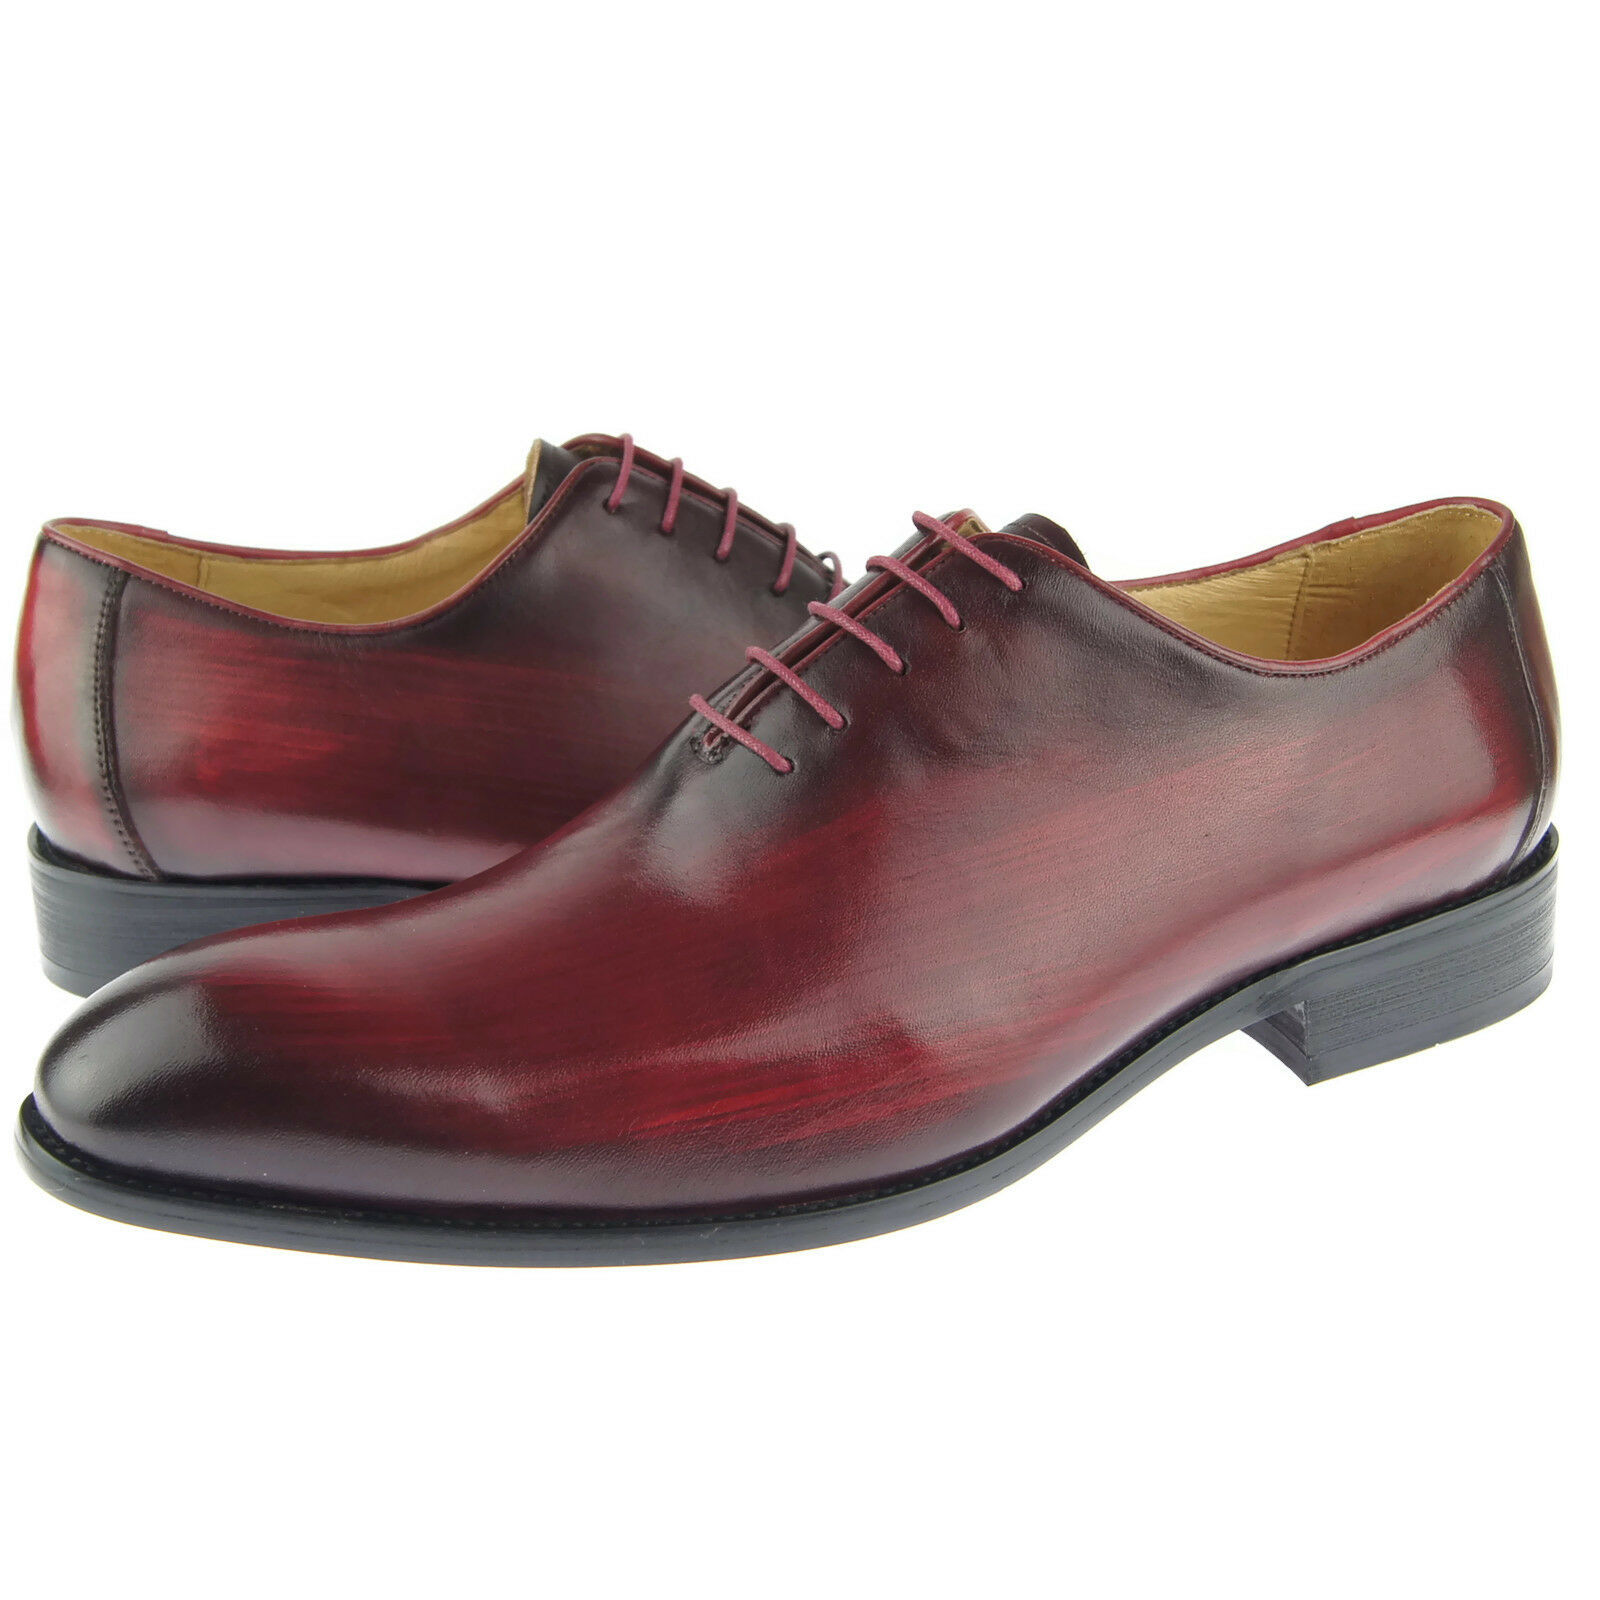 Carrucci Plain Toe Wholecut Oxford, Men's Dress Leather Shoes, Burgundy